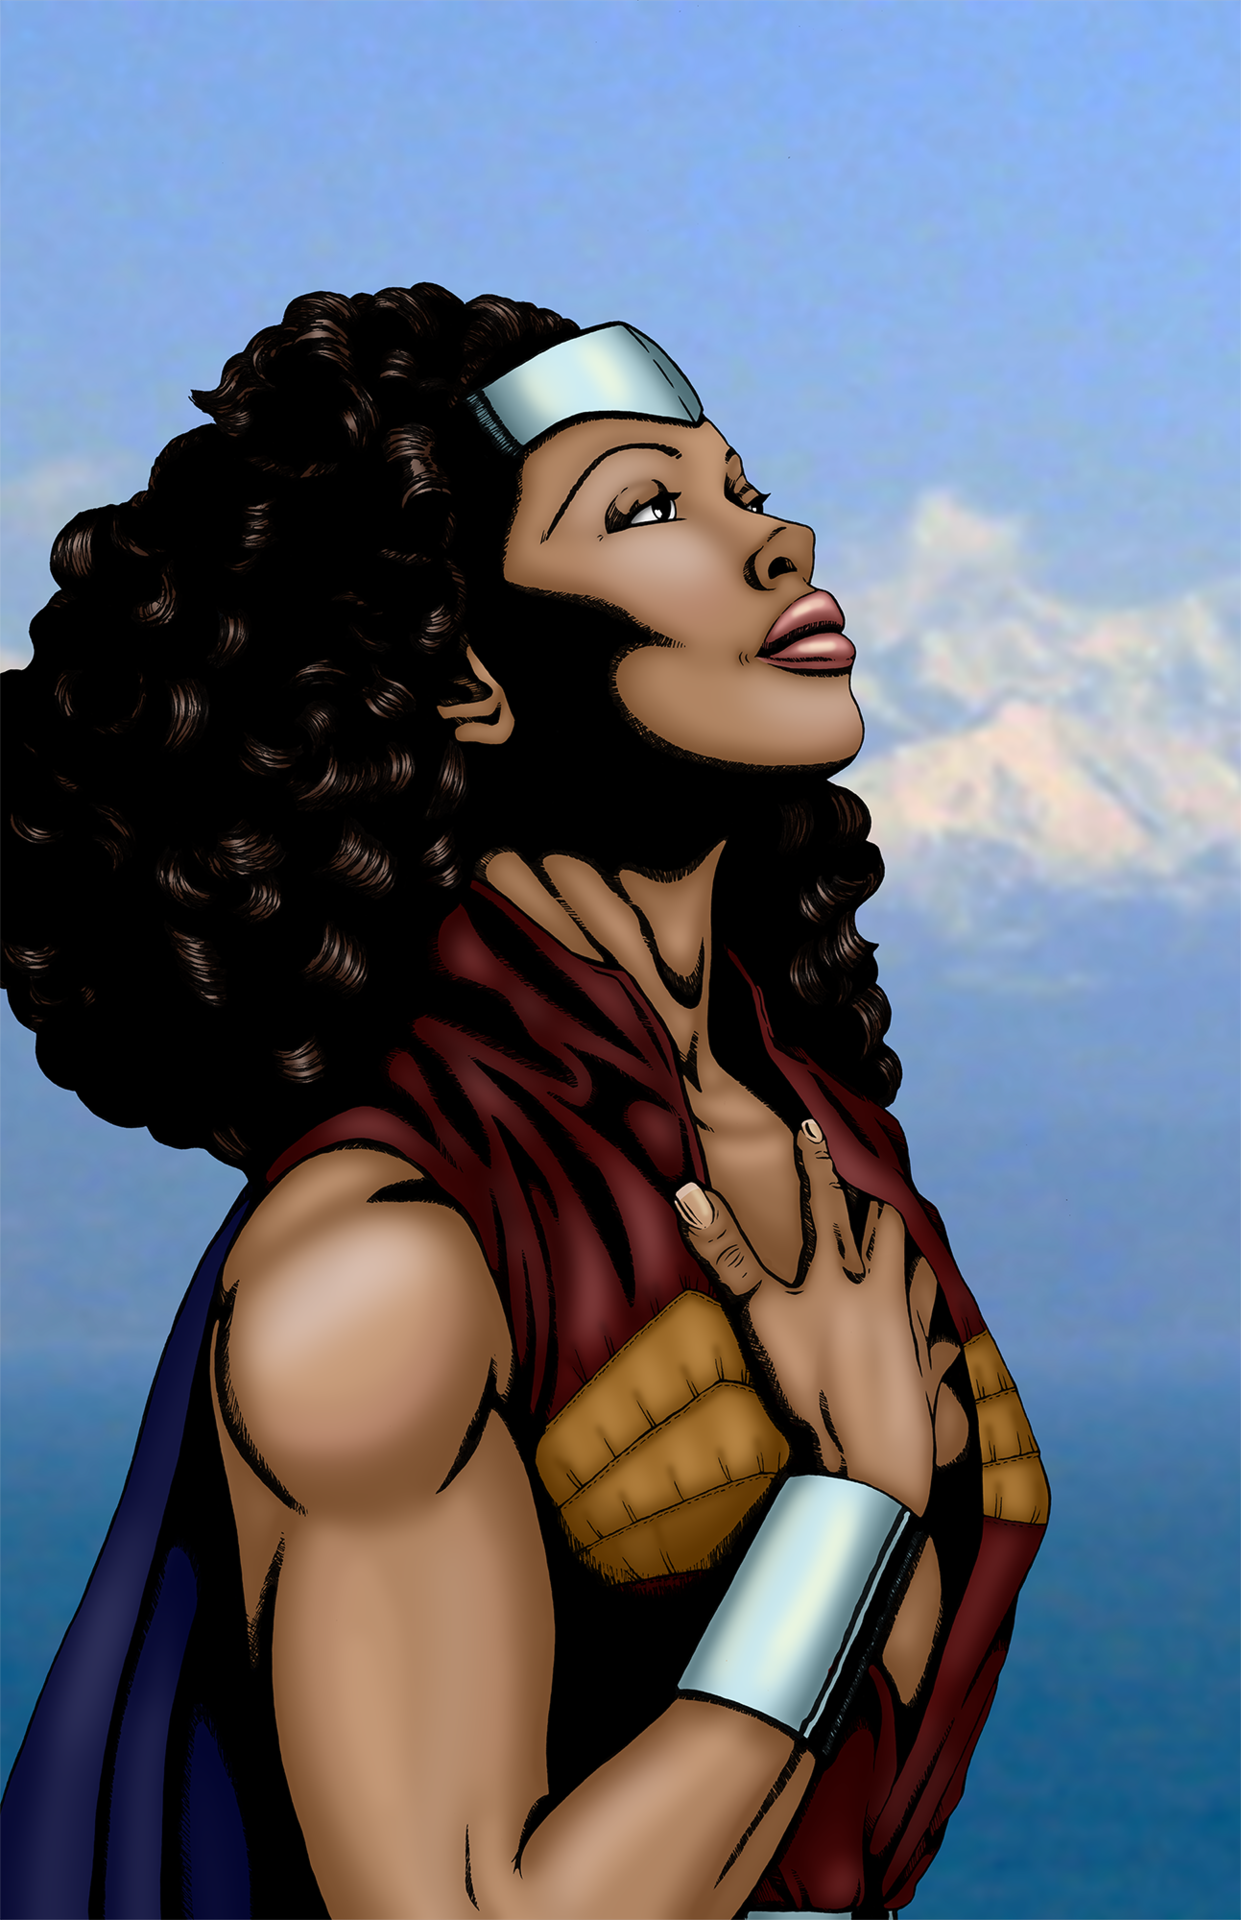 themarysue:  racialicious:  drawing-bored:  gina torres as wonder woman commission complete.  Because Gina Torres as Wonder Woman and Mondays go together.  Wednesday, but WHATEVER IT'S ALWAYS TIME FOR GINA TORRES.